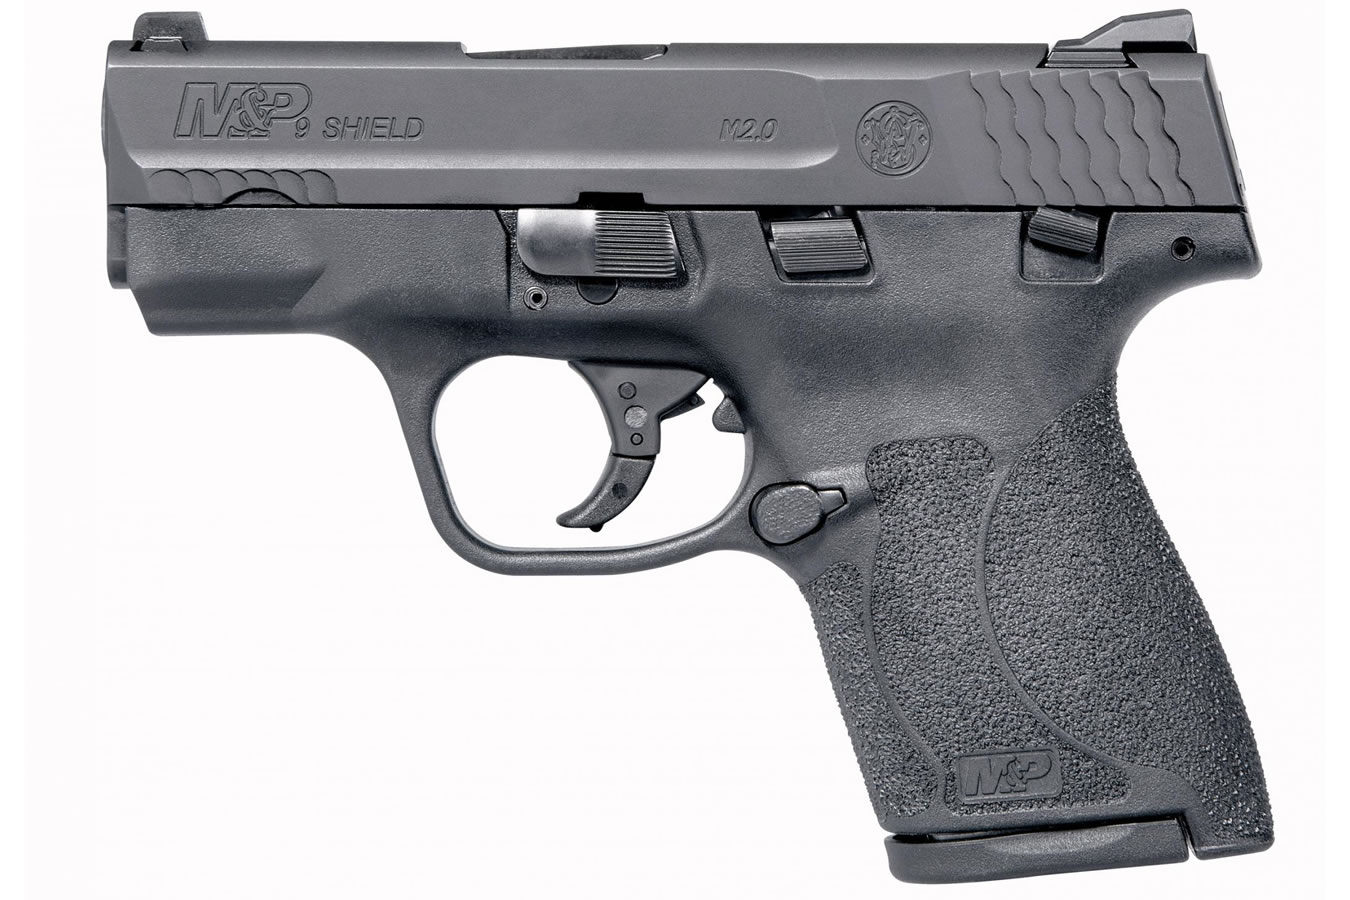 No. 11 Best Selling: SMITH AND WESSON MP9 SHIELD M2.0 9MM WITH THUMB SAFETY